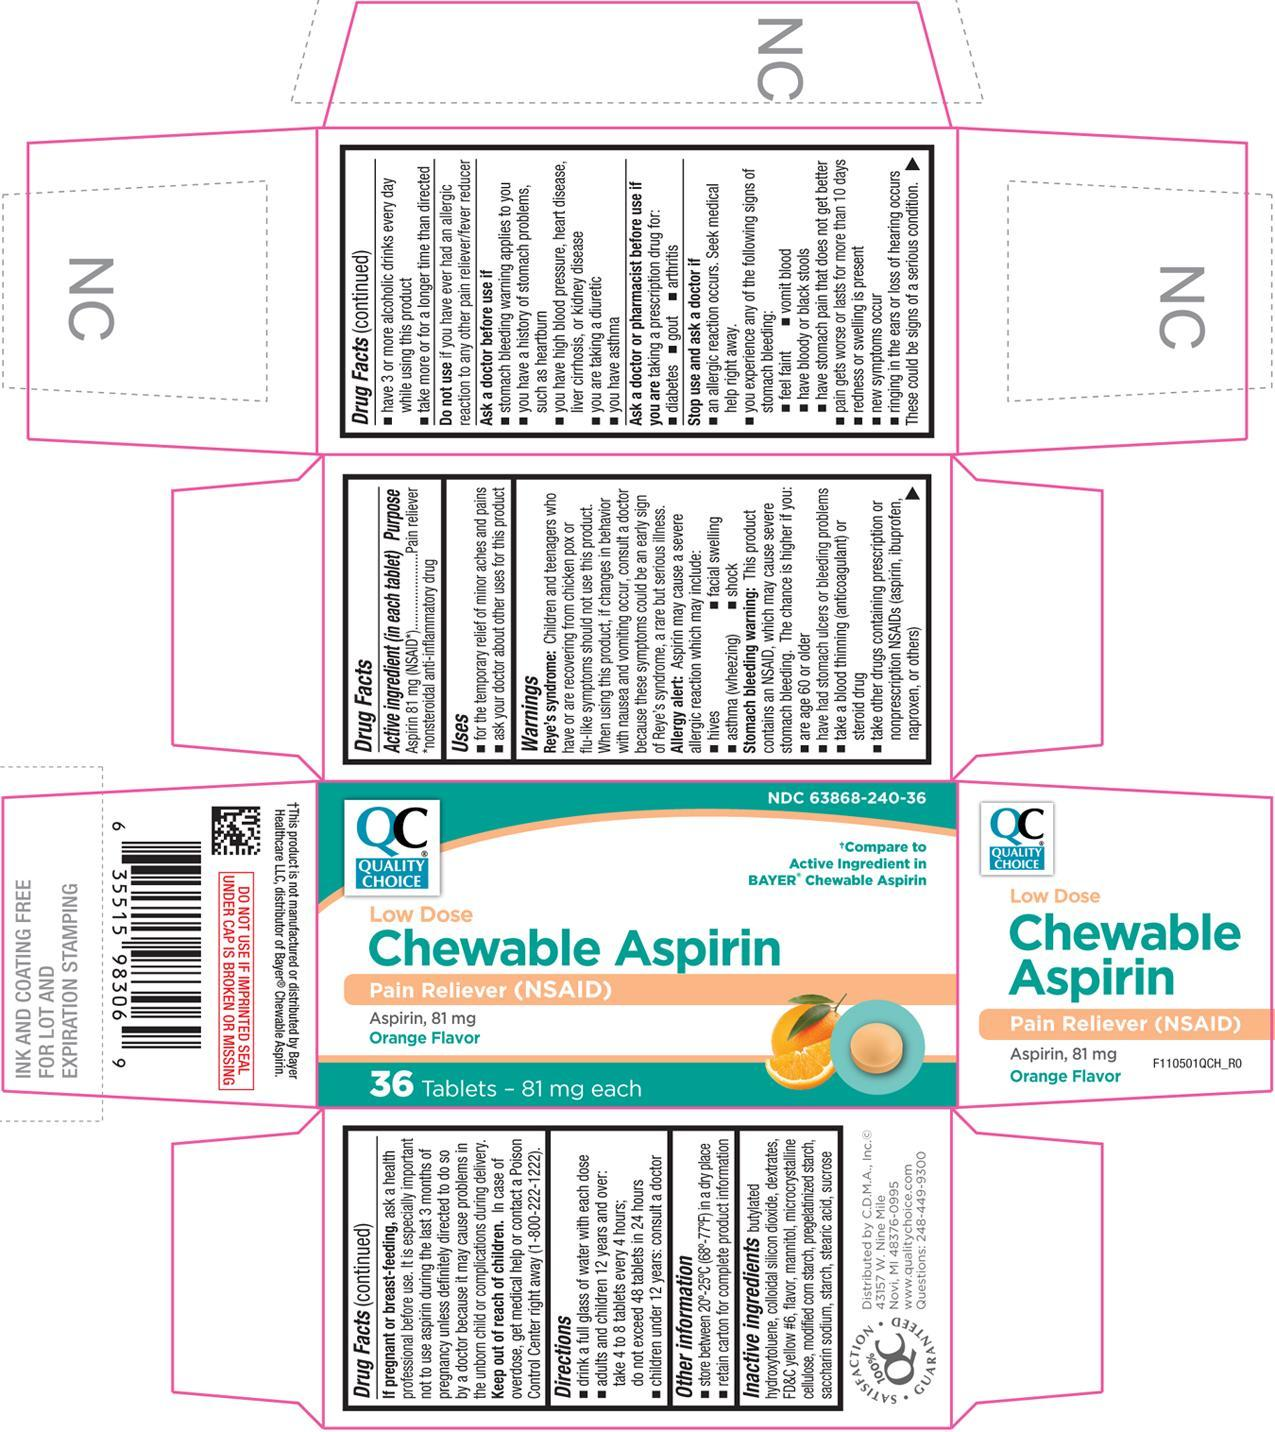 Chewable Aspirin (Aspirin) Tablet, Chewable [Chain Drug Marketing Association]